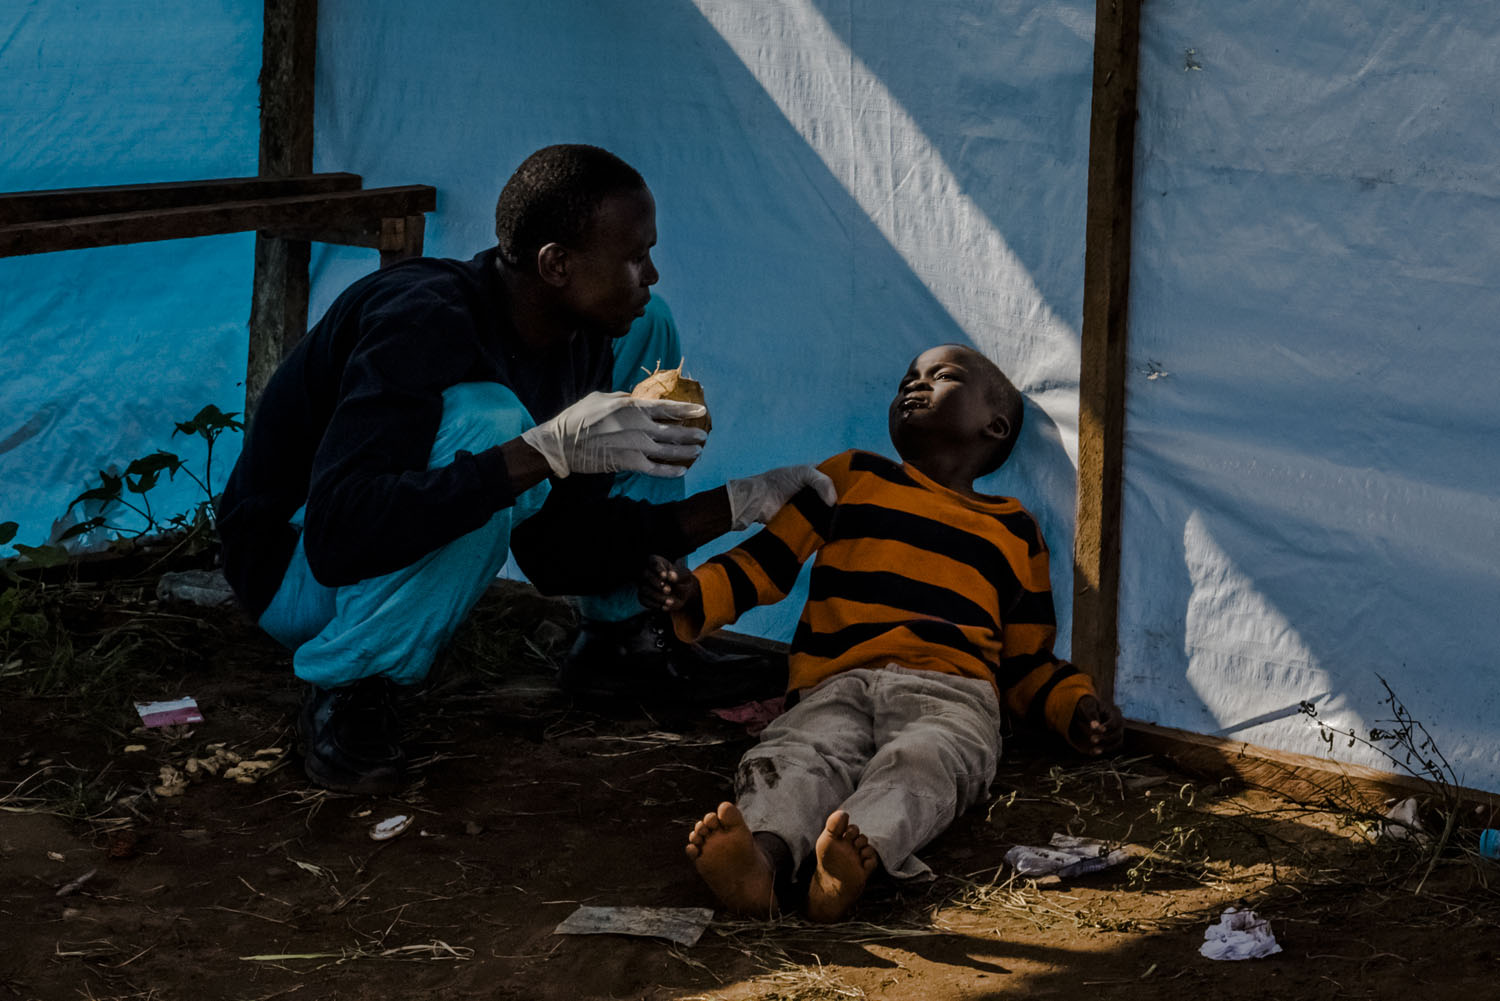 James Dorbor, 8, suspected to have Ebola, lays on the ground as his father Edward tried to get the boy to drink coconut water. They waited for James to be admitted into the JFK Ebola treatment center on Sept. 5, 2014 in Monrovia, Liberia.